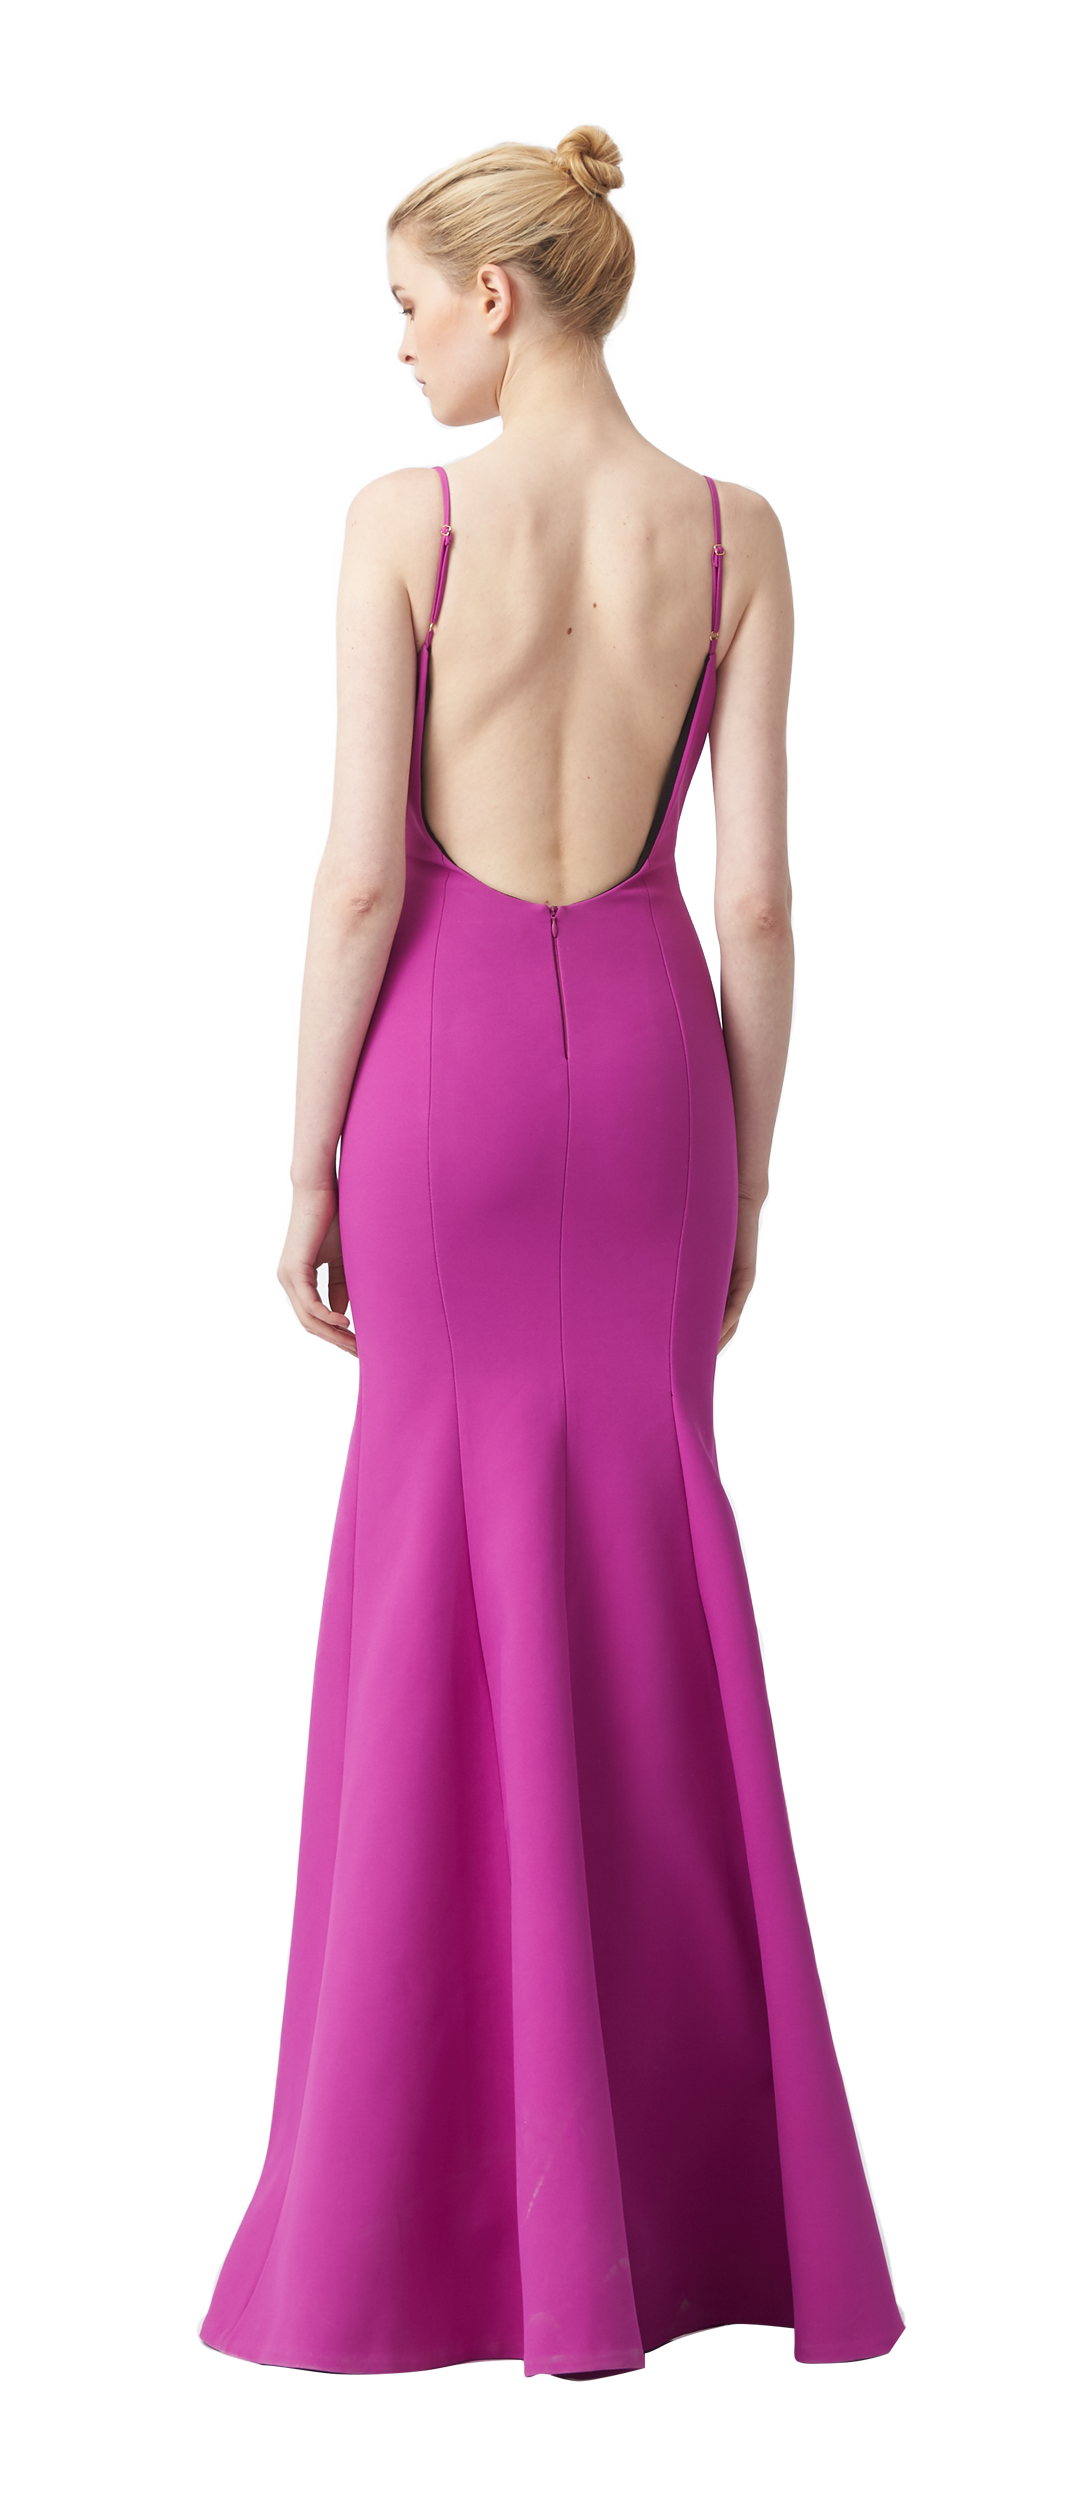 896971e987308 CAMILLE BONDED SCOOP BACK MAXI DRESS  399.00